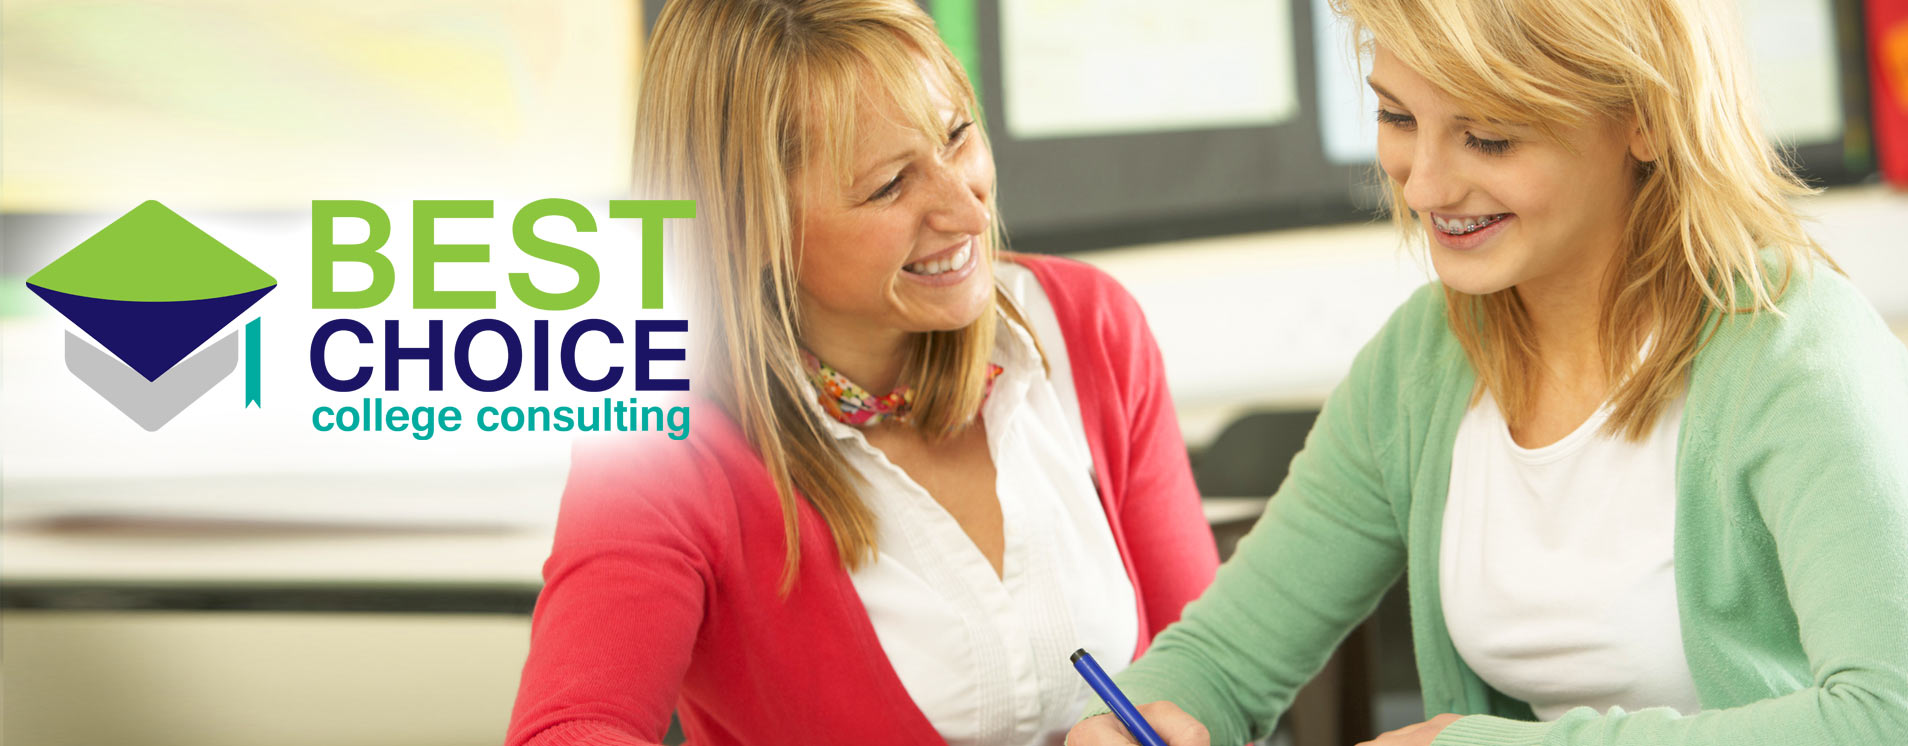 about best choice college consulting